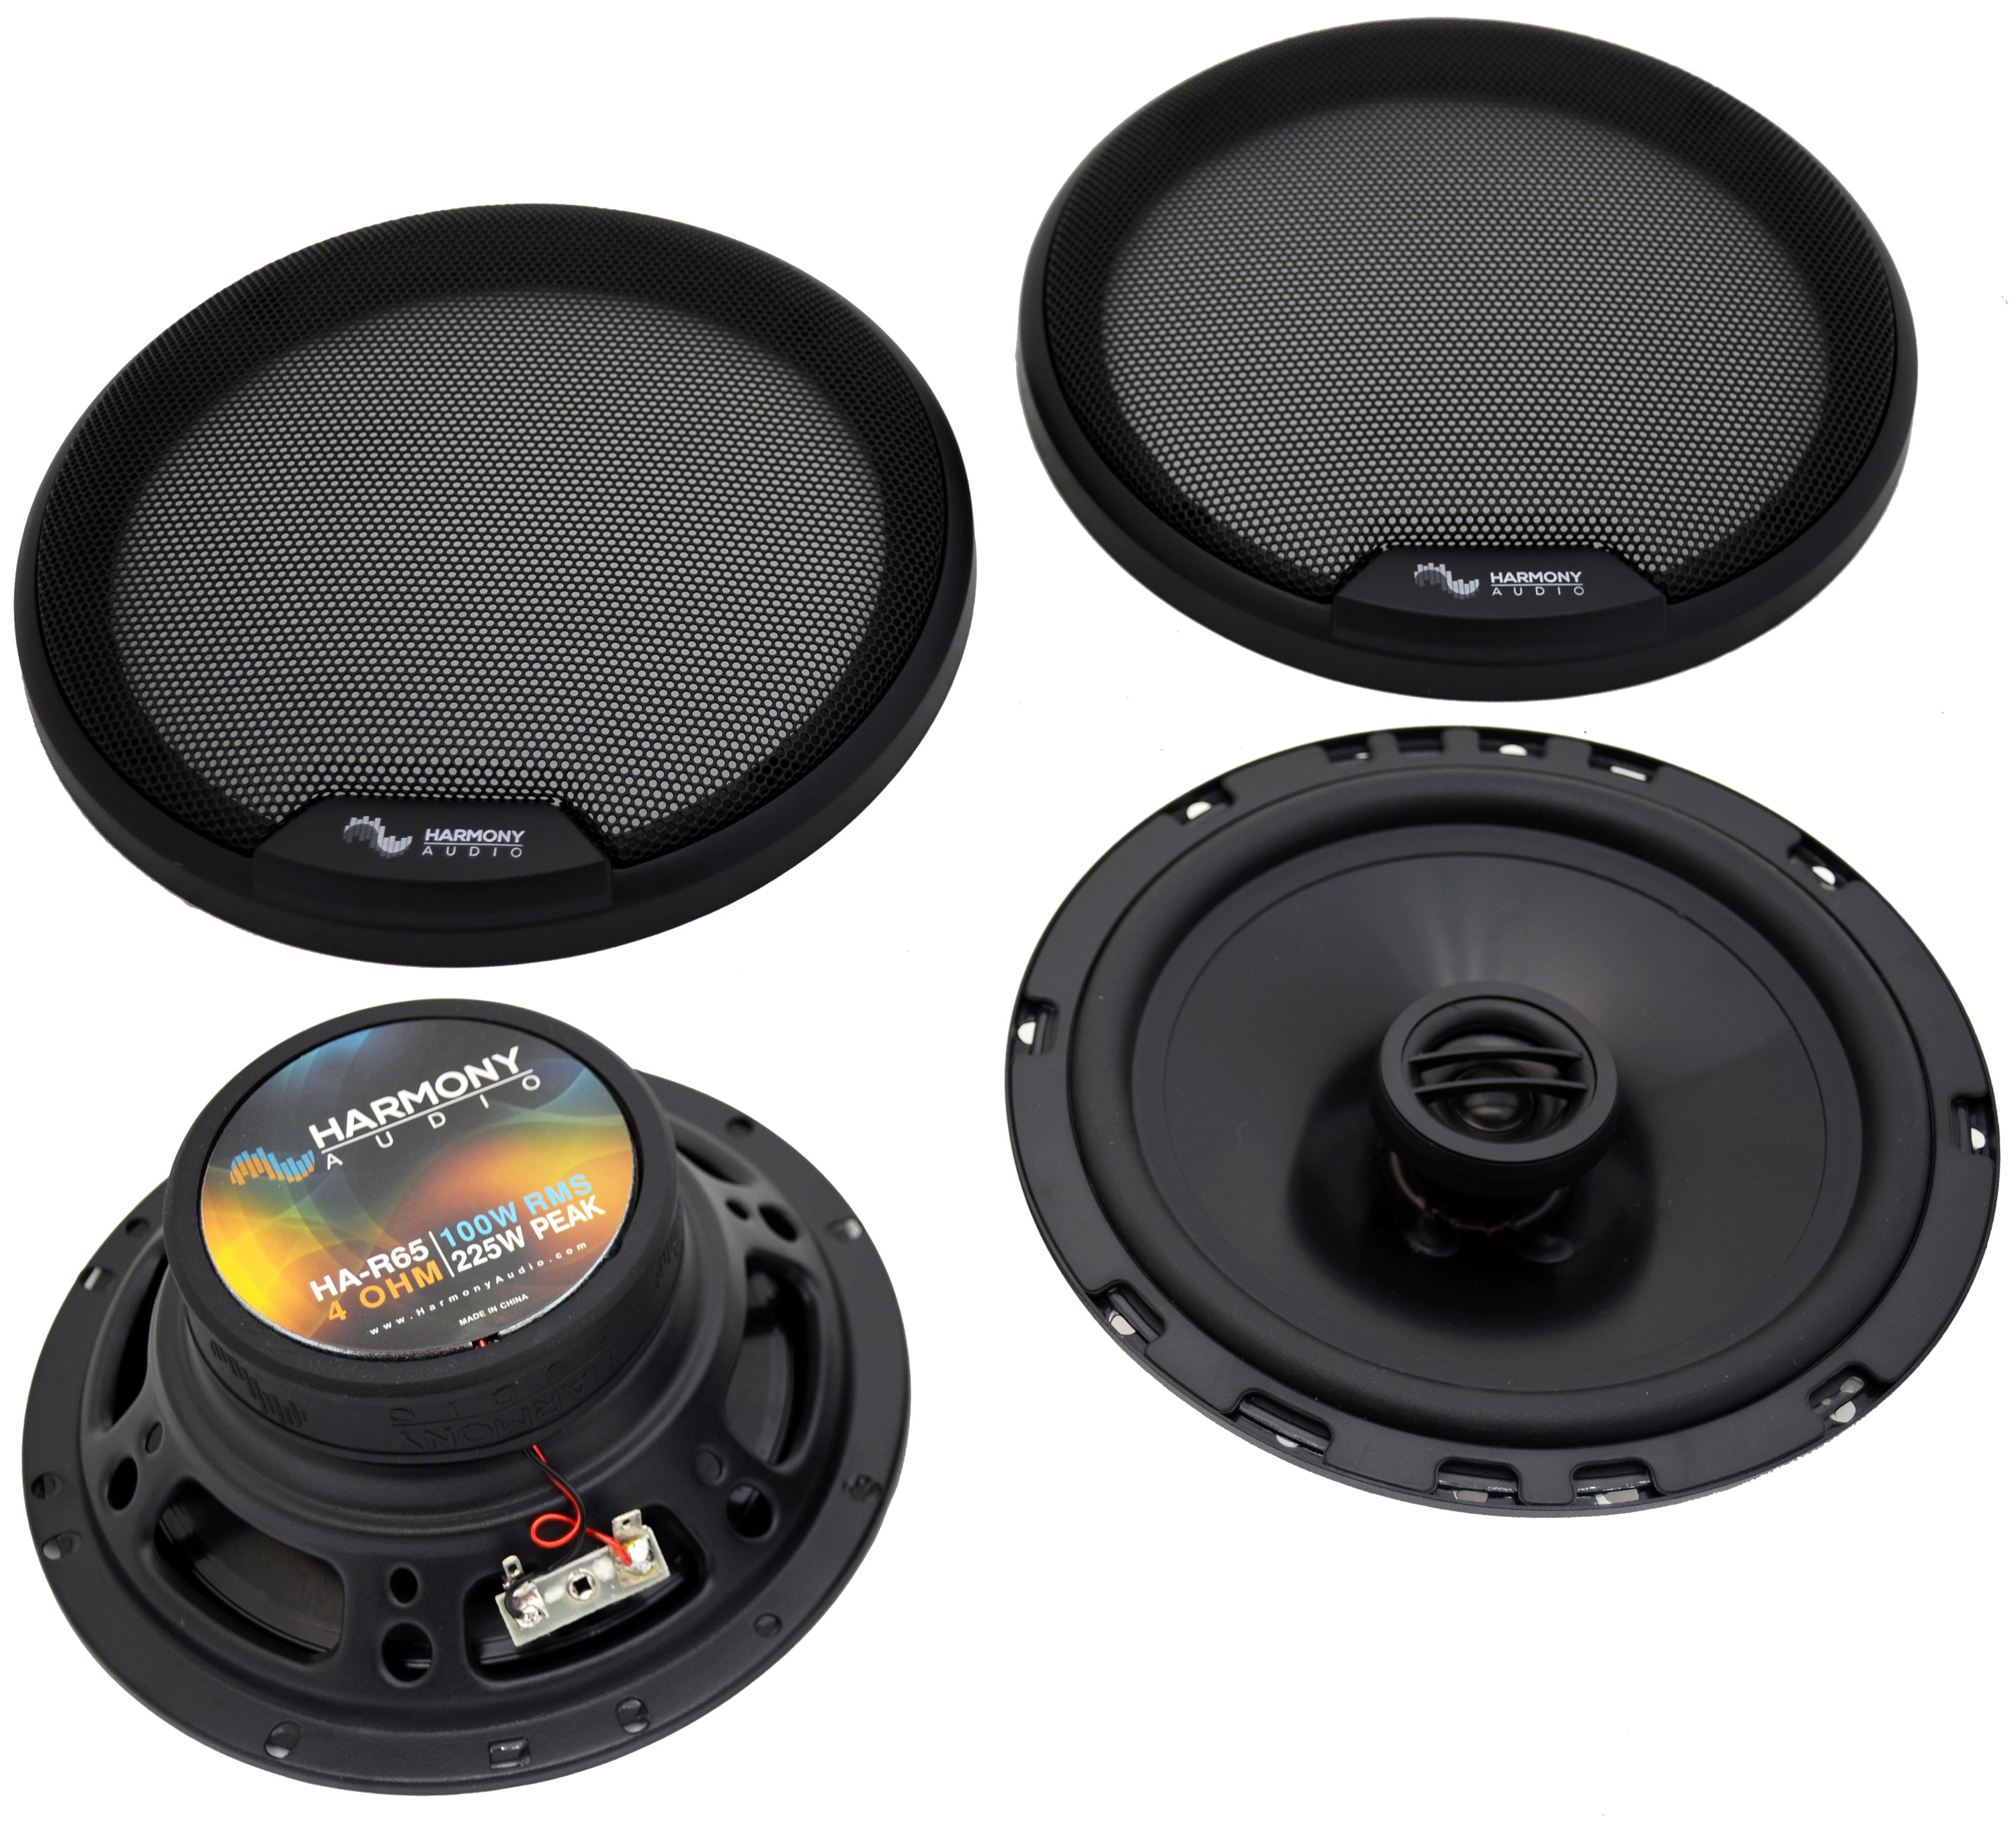 Fits Audi A6 1997-2008 Rear Deck Replacement Speaker Harmony HA-R65 Speakers